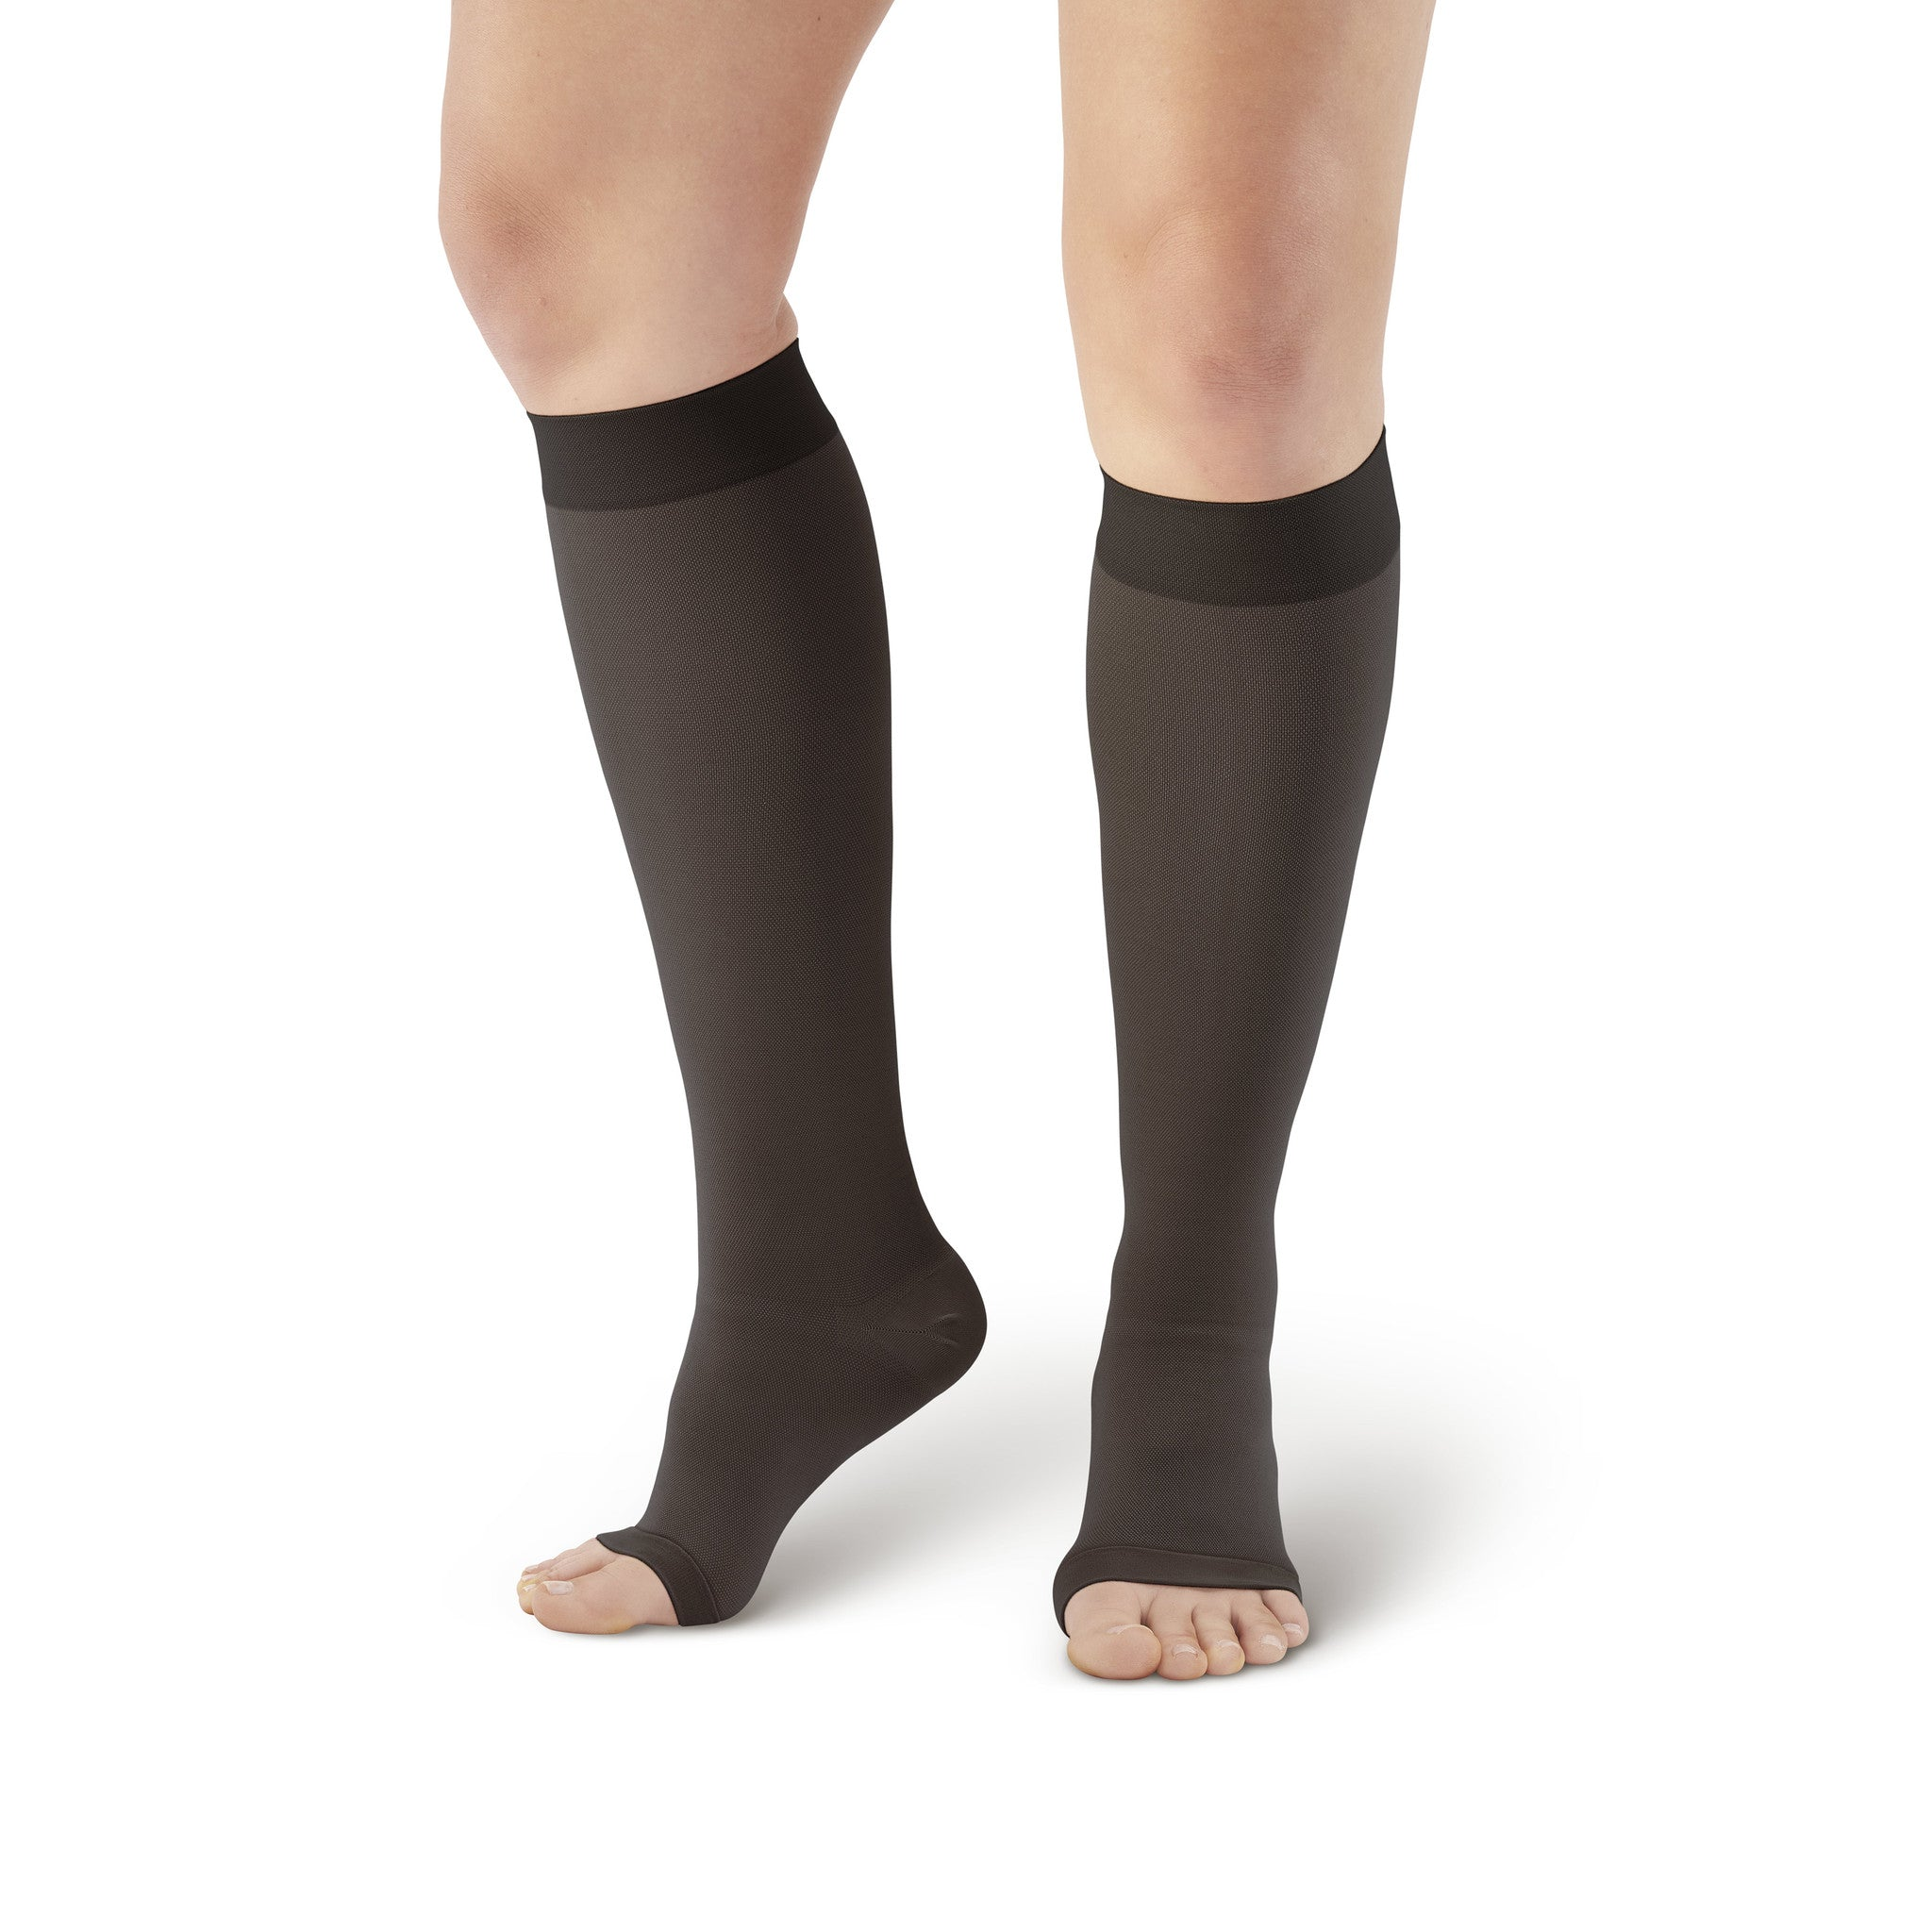 a912c5b32 ... AW Style 201 Medical Support Open Toe Knee Highs - 20-30 mmHg - Black  ...